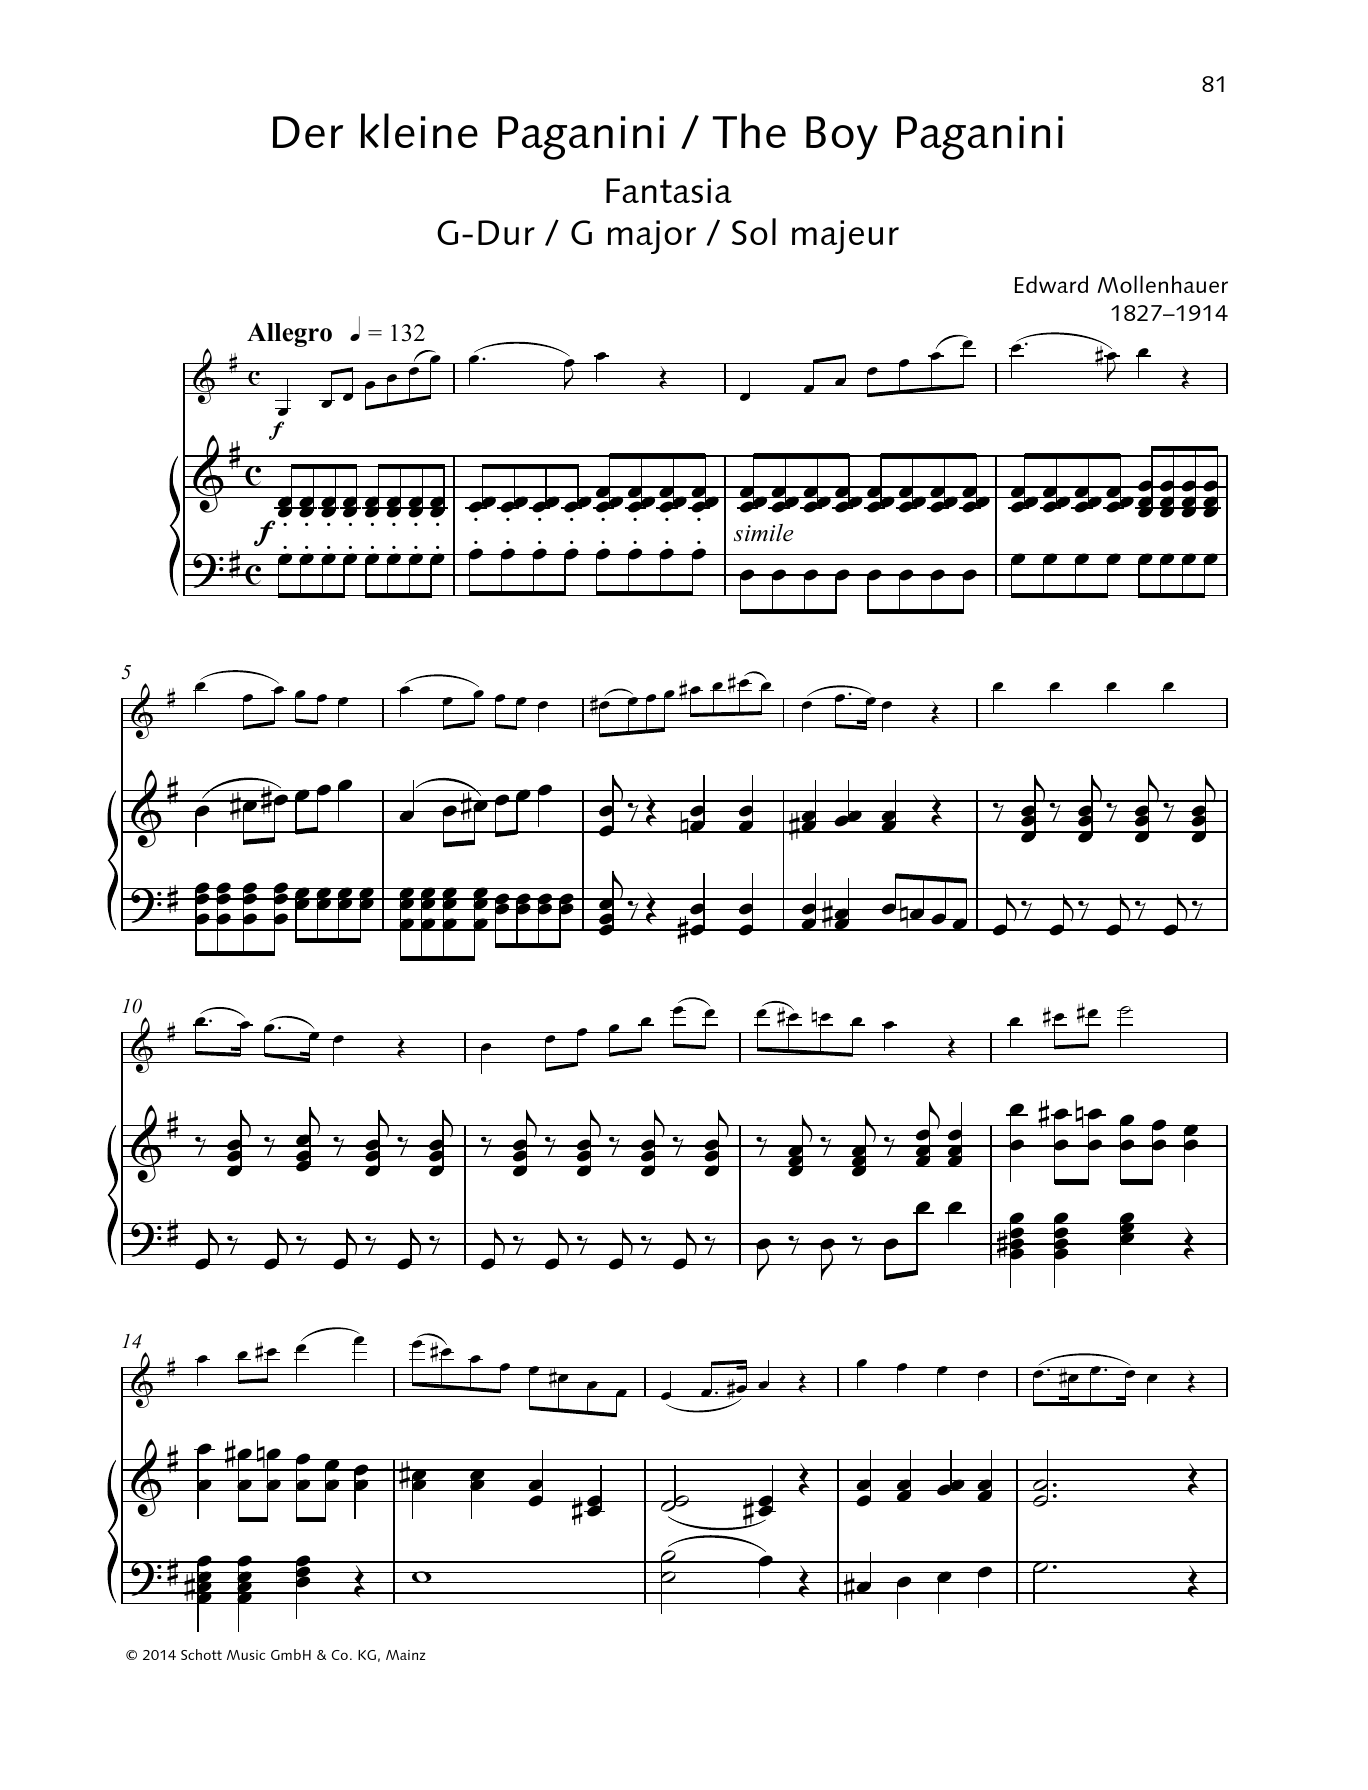 The Boy Paganini Sheet Music